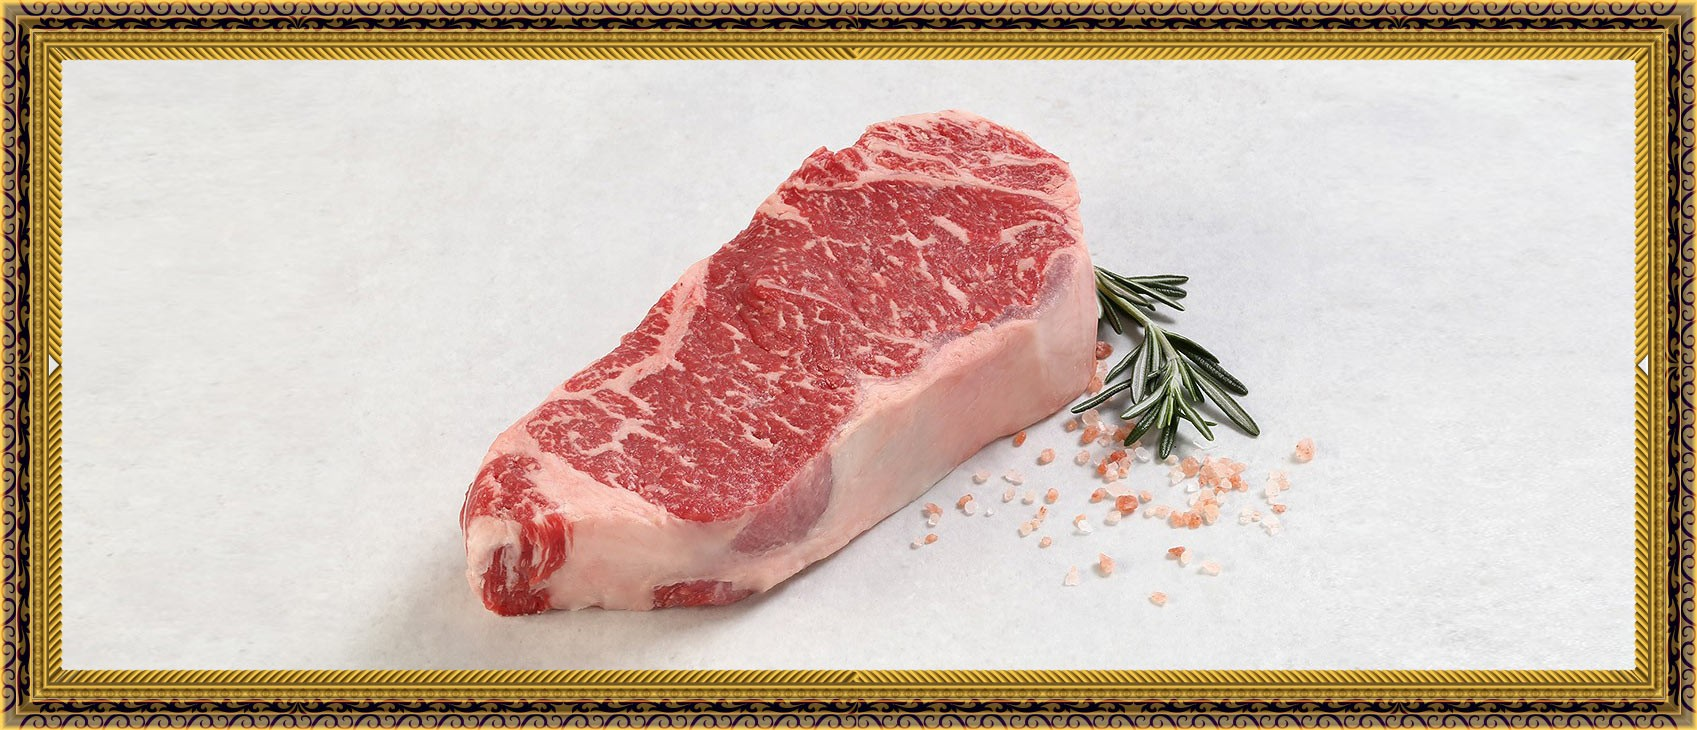 The Ultimate Wagyu Sampler by New York Prime Beef